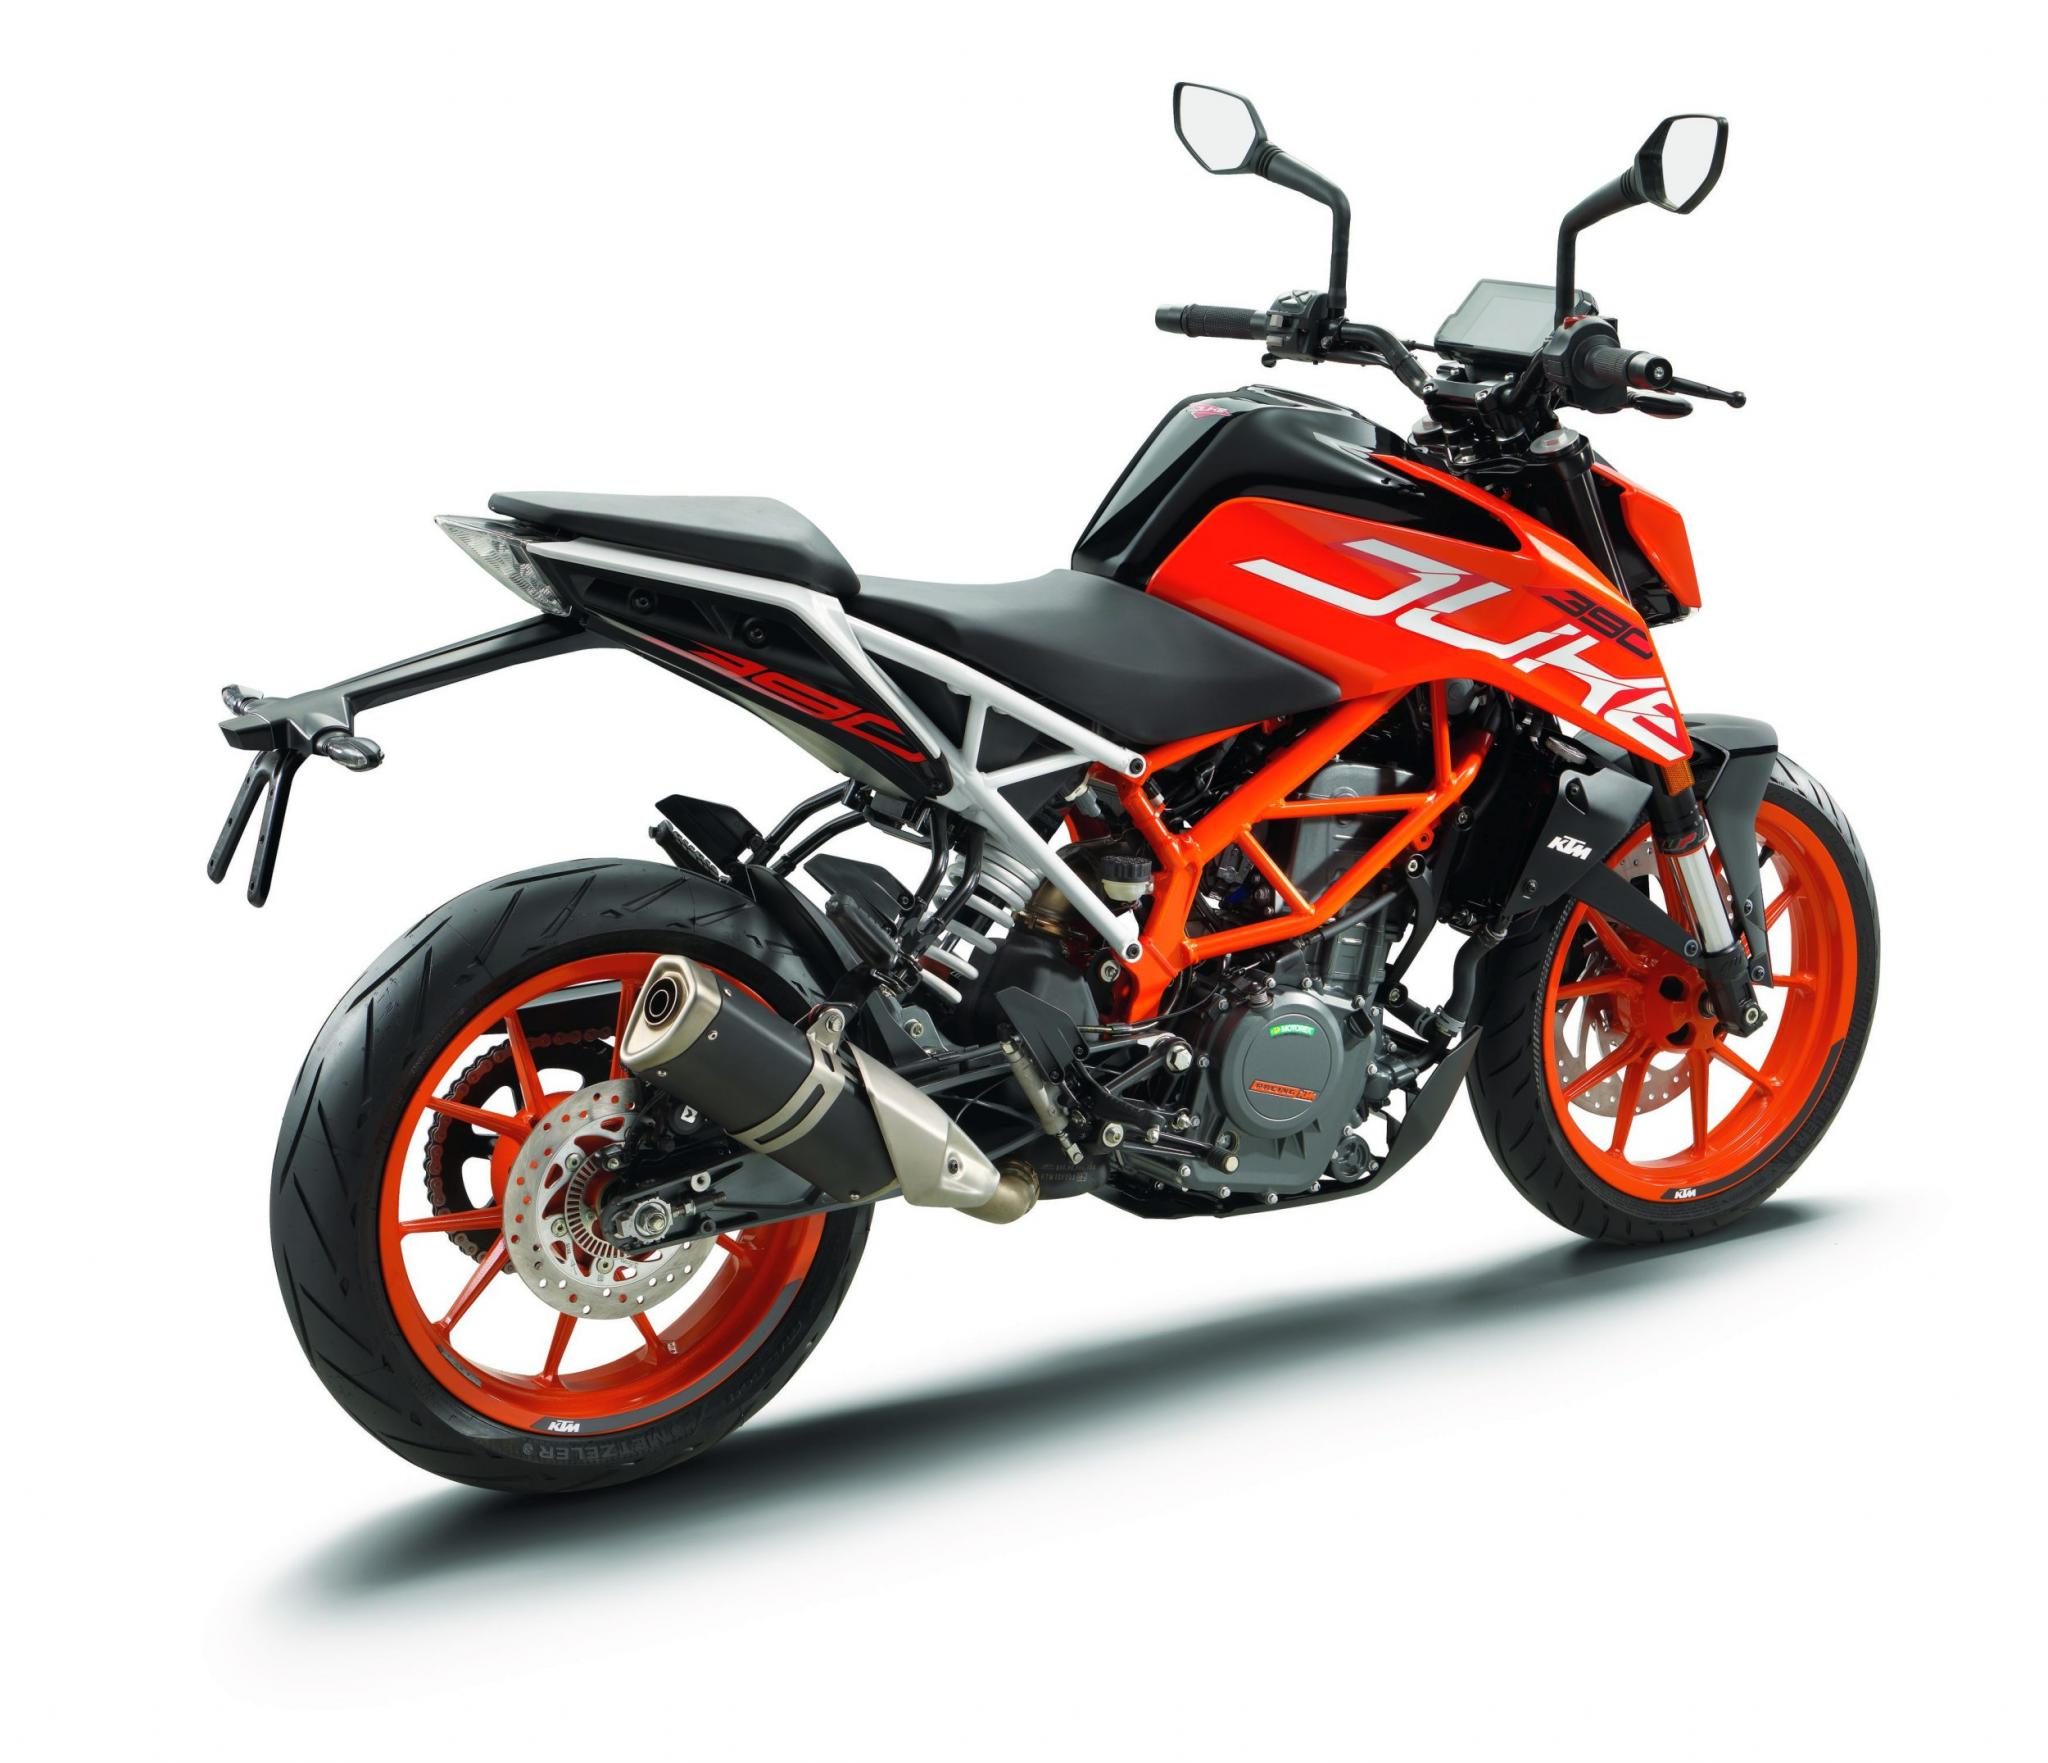 ktm 390 duke 2017 motorrad fotos motorrad bilder. Black Bedroom Furniture Sets. Home Design Ideas